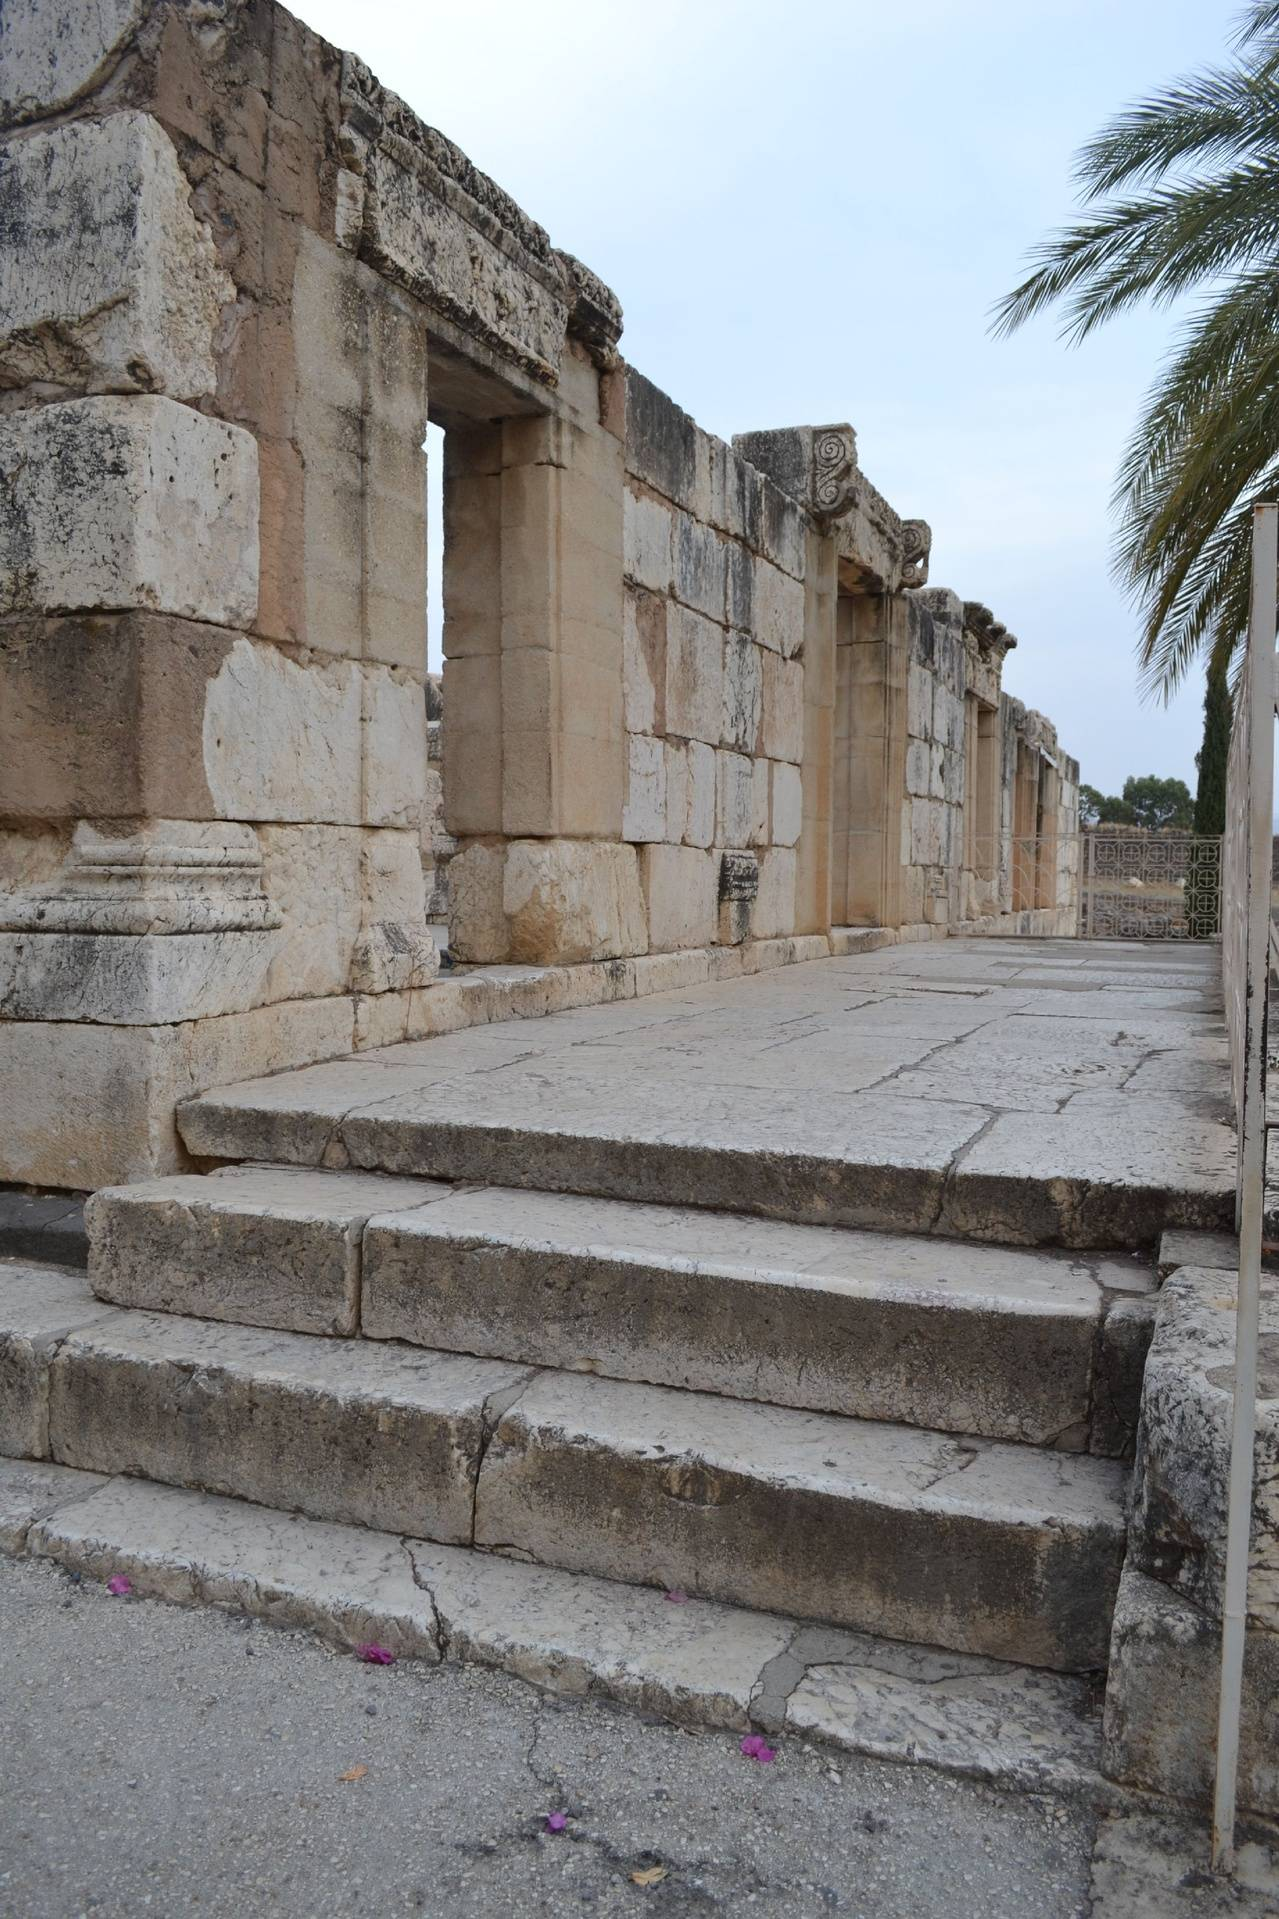 Steps into the Synagogue